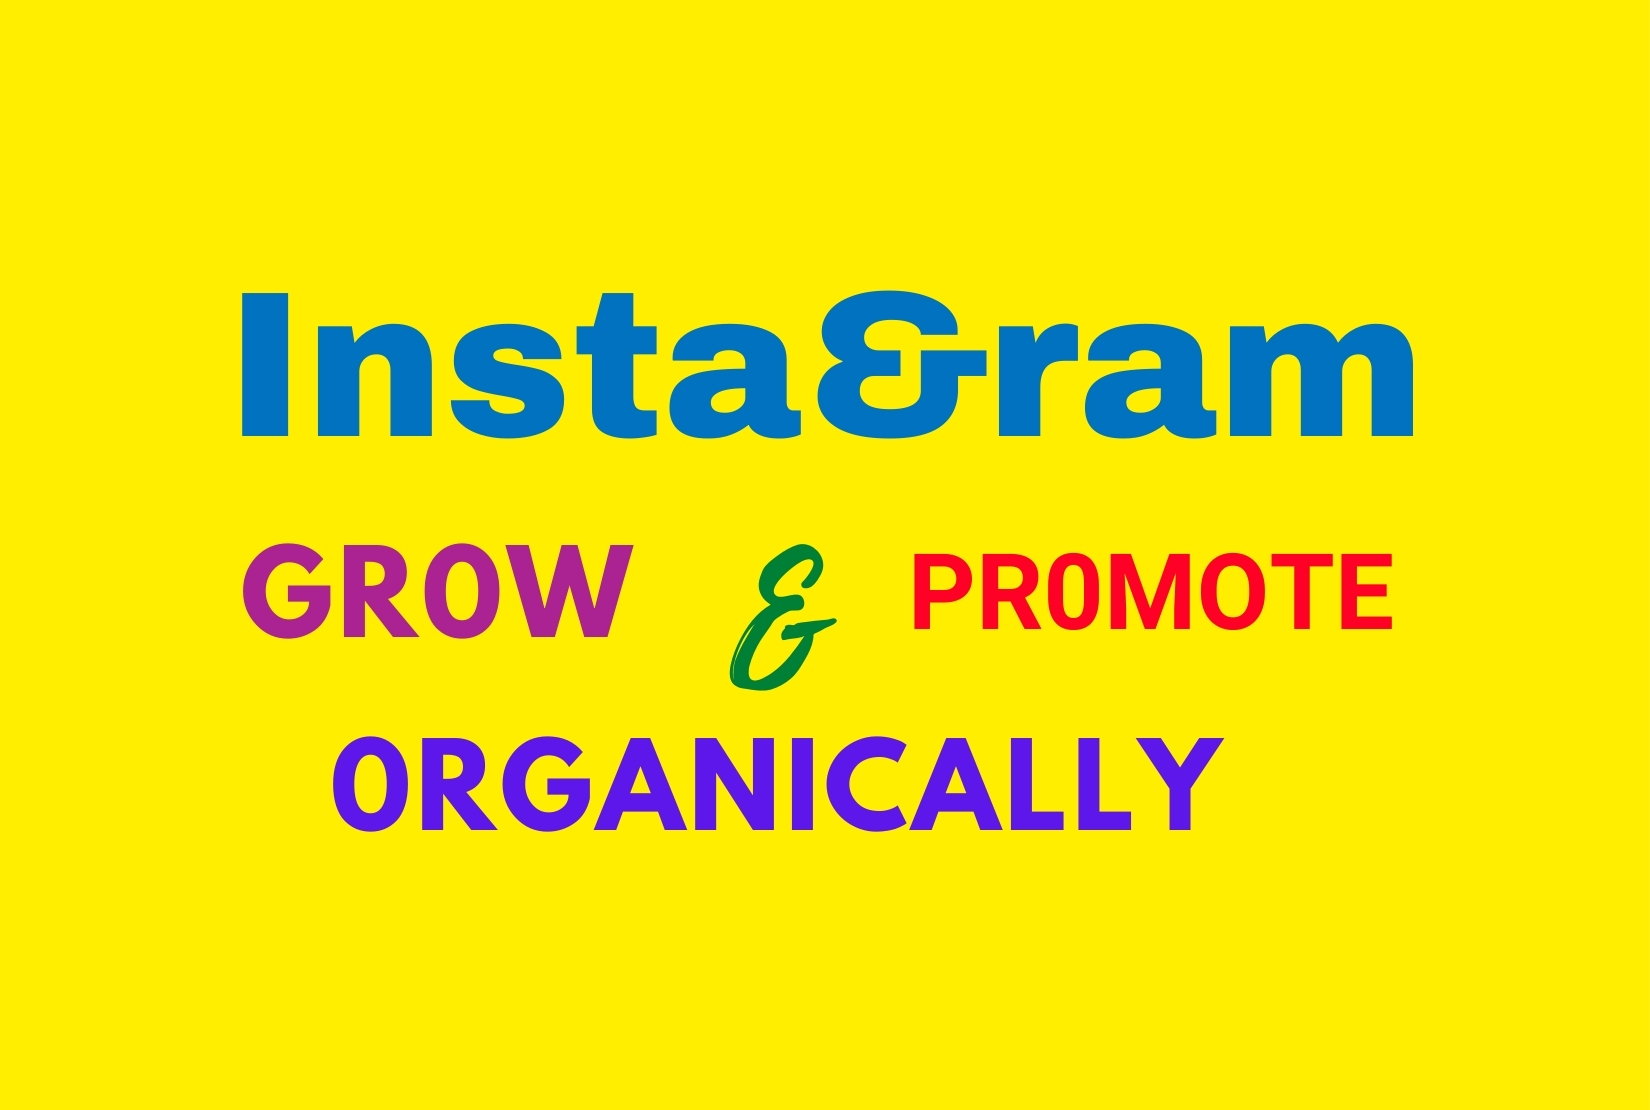 I will promote and grow Instagram page naturally